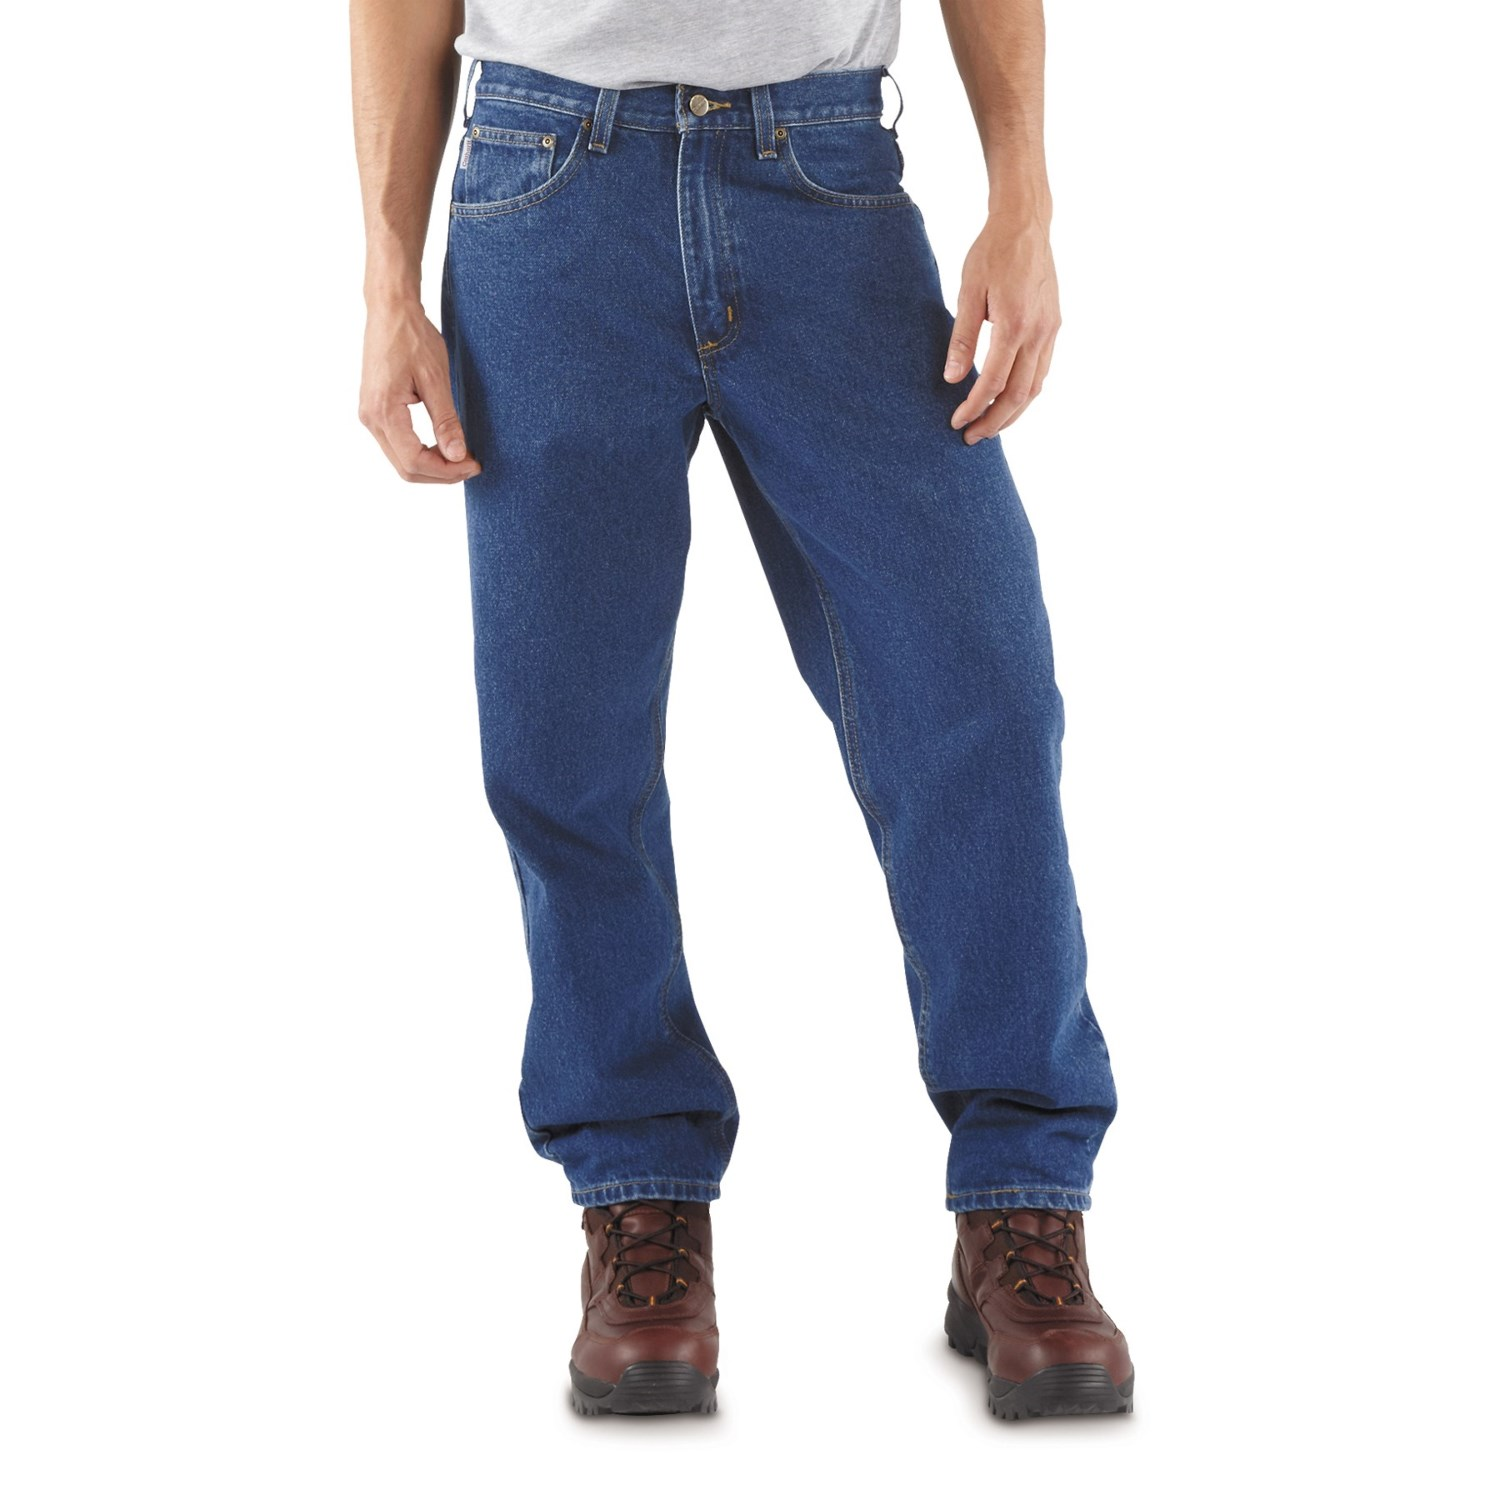 Carhartt Denim Jeans (For Men)